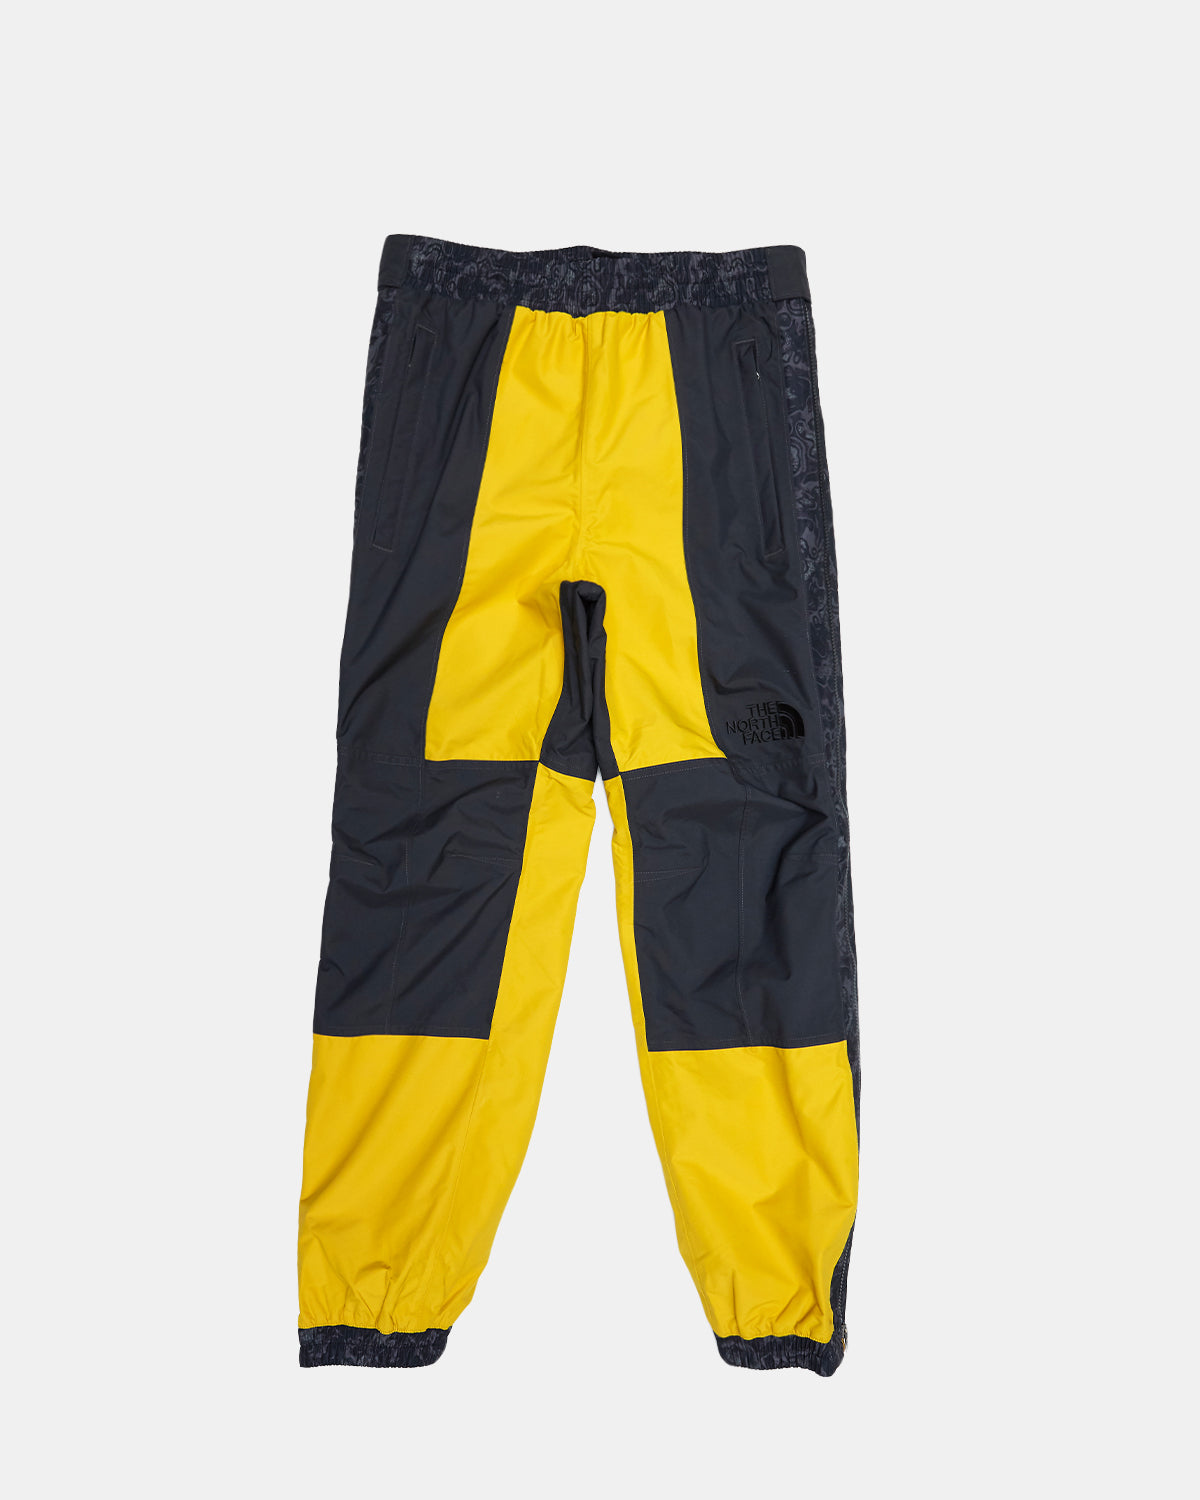 The North Face - '94 Rage Rain Pants (Leopard Yellow | Asphalt Grey | 1994 Rage Print)